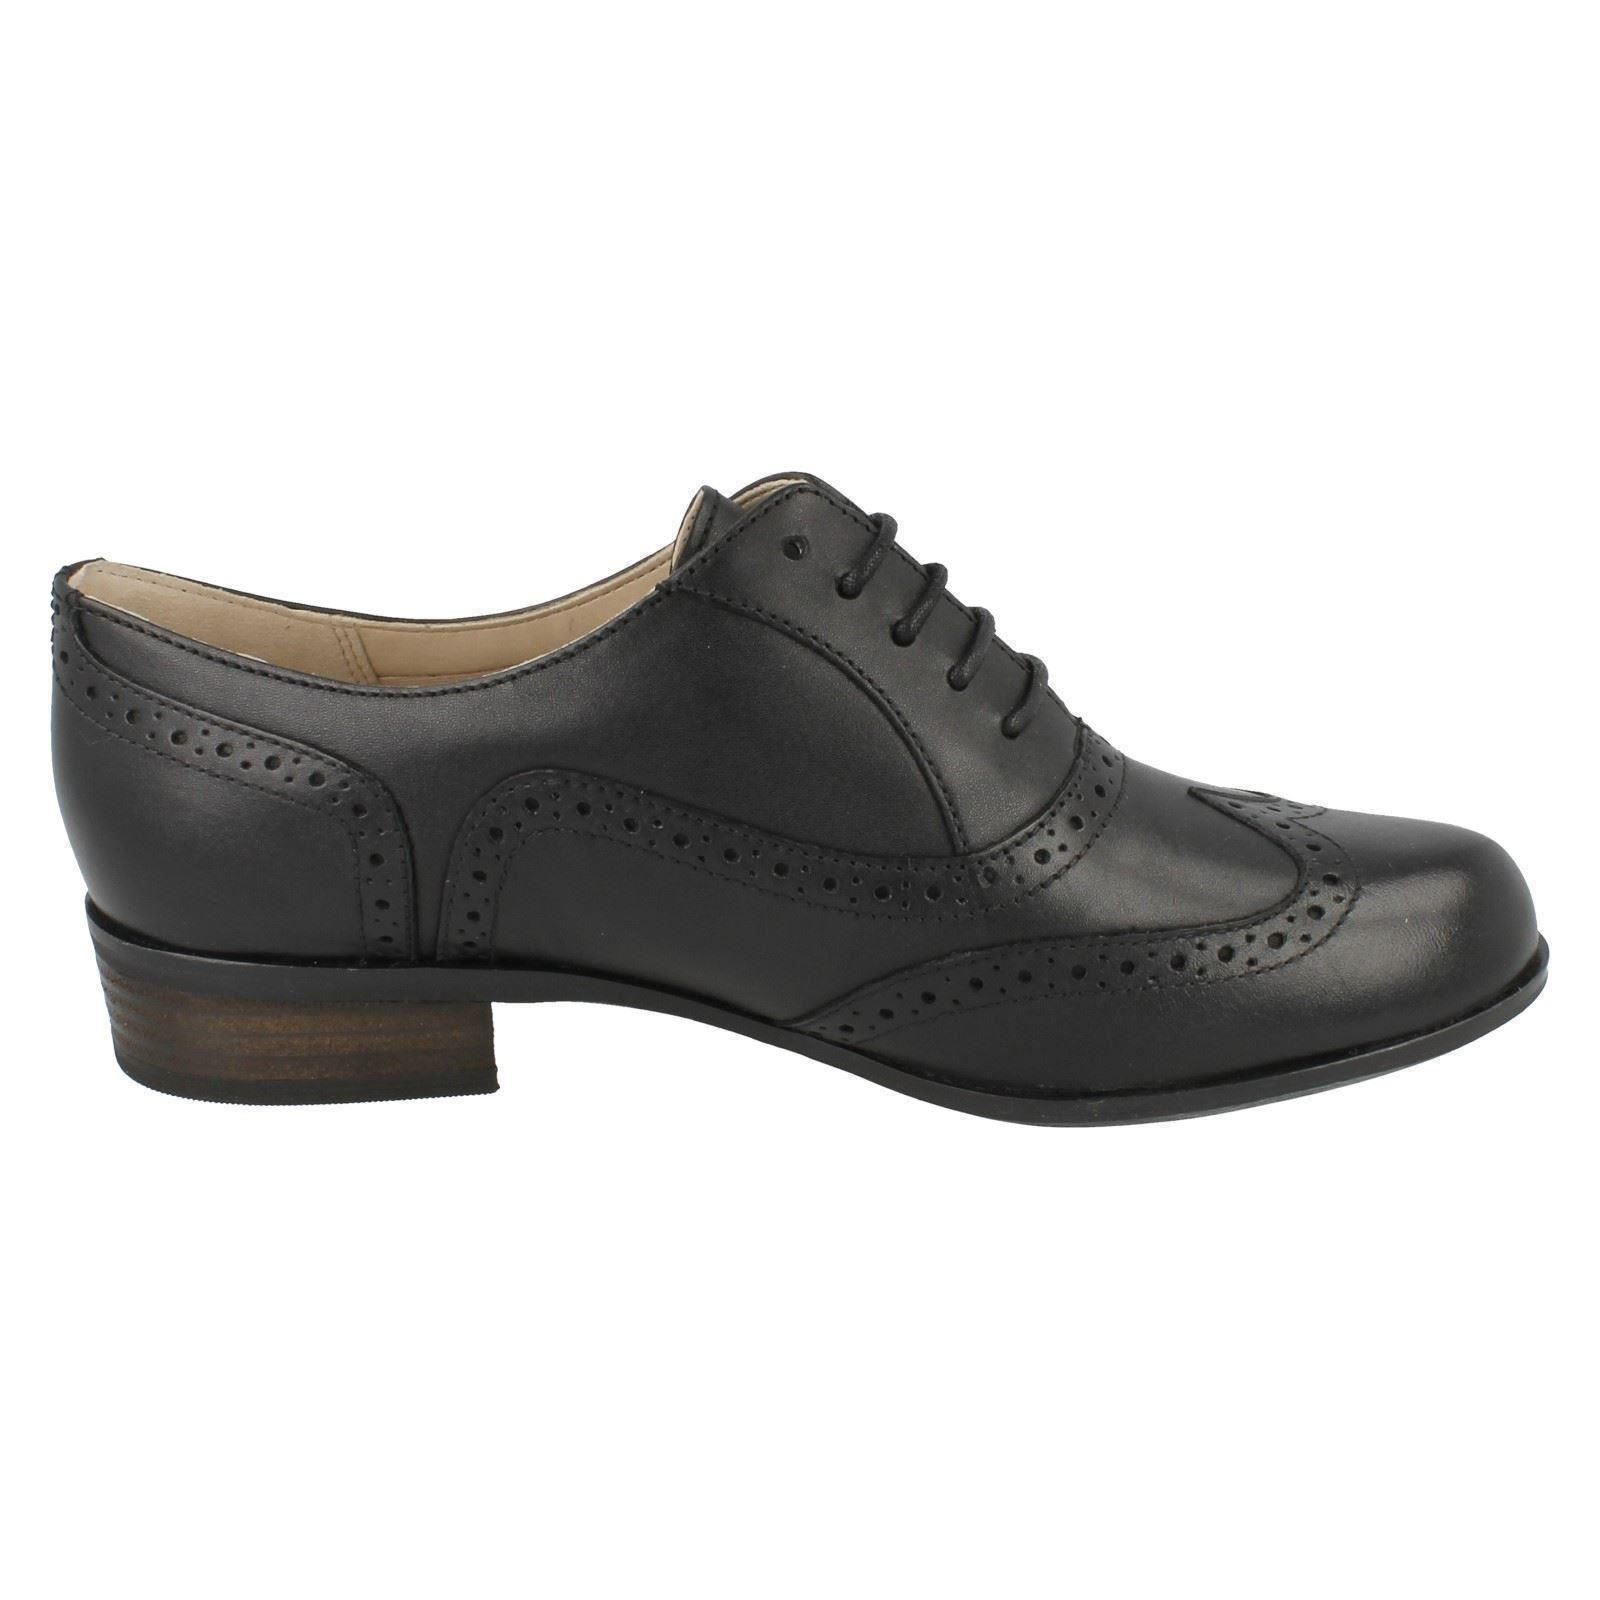 Clarks Ladies Dress Shoes